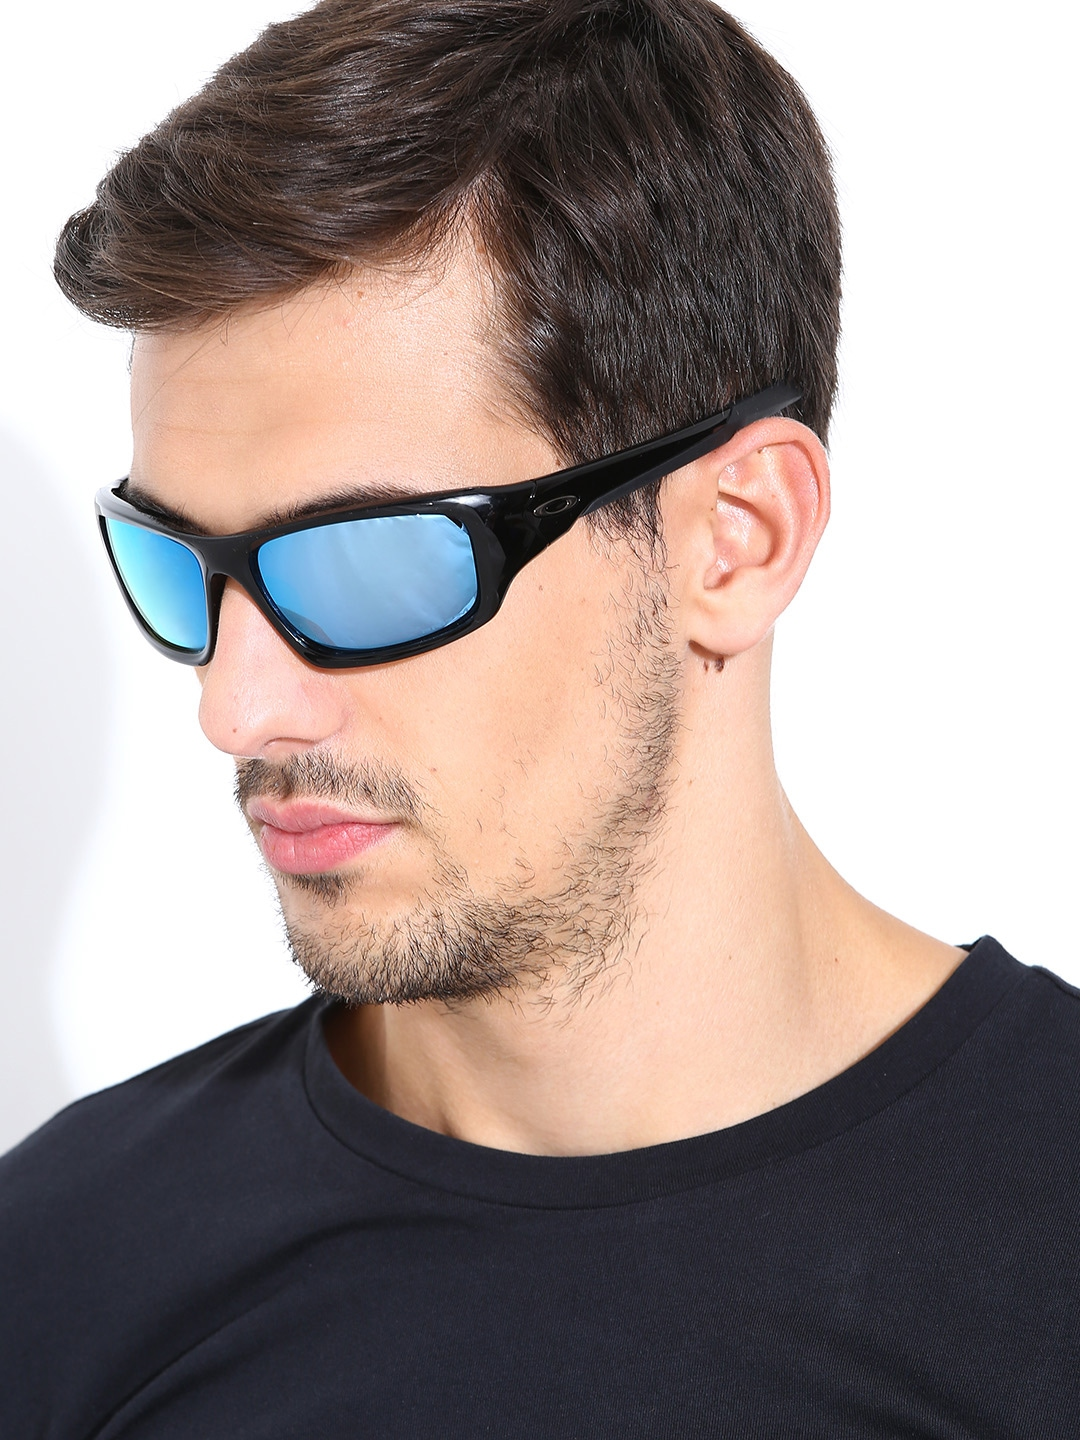 oakley sunglasses valve polarized  buy oakley prizm h20 deep water polarized valve men rectangular sunglasses 0oo9236 sunglasses for men